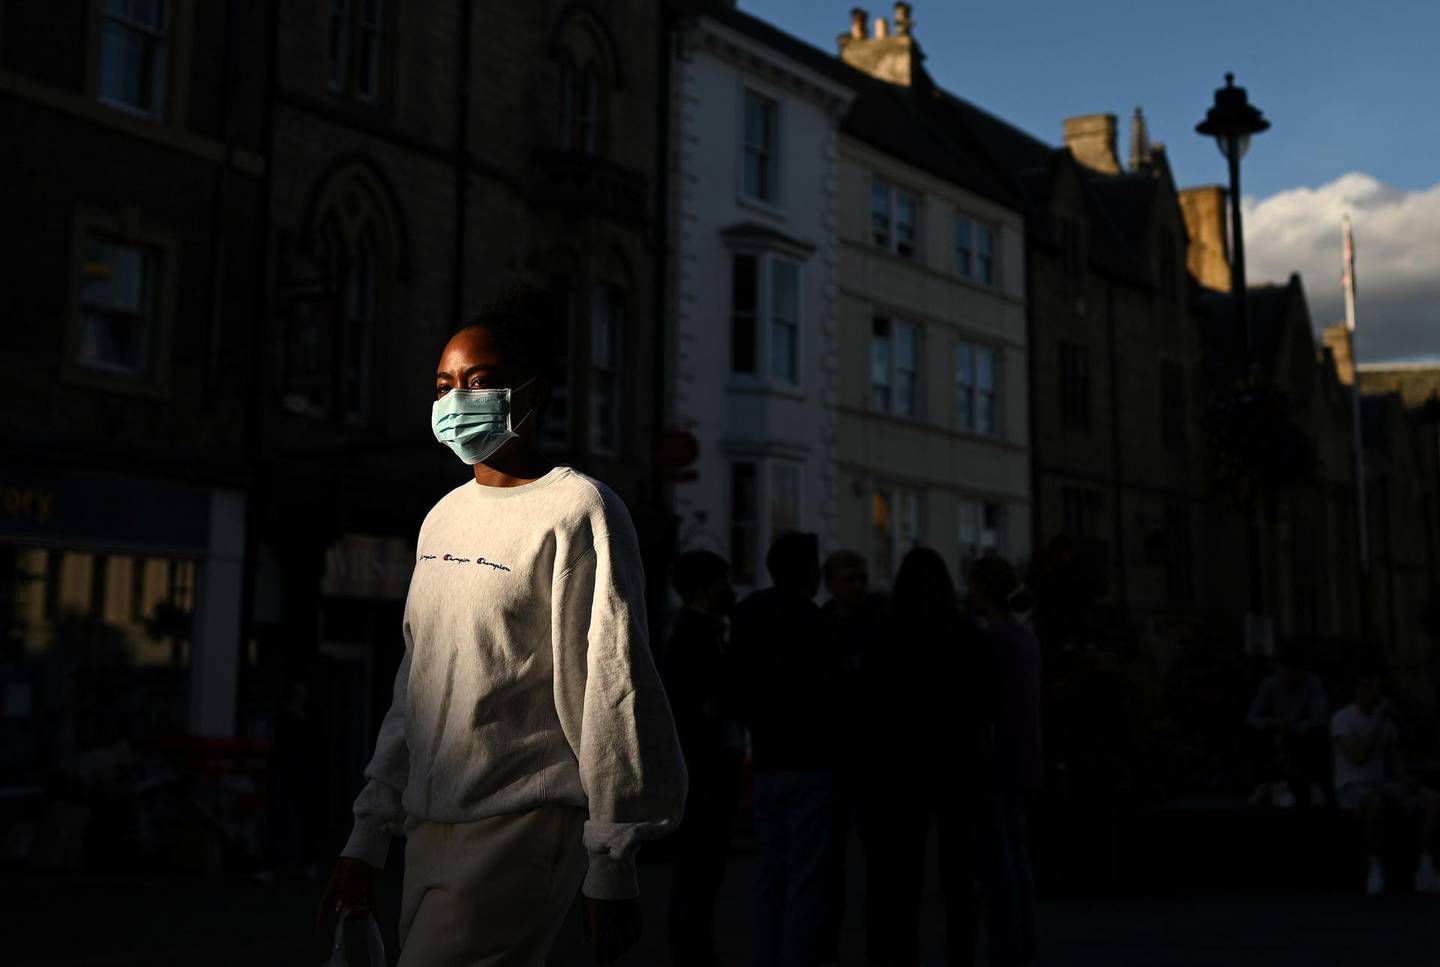 A woman wearing a face mask or covering due to the COVID-19 pandemic, walks in the evening sunshine in Durham, northeast England on September 29, 2020, after tighter restrictions were put in place to help mitigate the spread of COVID-19.  More than two million people in northeast England face new restrictions because of a surge in coronavirus cases, the government announced on Thursday, as it battled to contain a potential second wave of infection. Tighter regulations on socialising are due to come into force from Friday in Northumberland, North and South Tyneside, Newcastle-upon-Tyne, Gateshead, and County Durham. Residents will be banned from socialising in homes or gardens with people from outside their household, while food and drink venues will be restricted to table service only. / AFP / Oli SCARFF